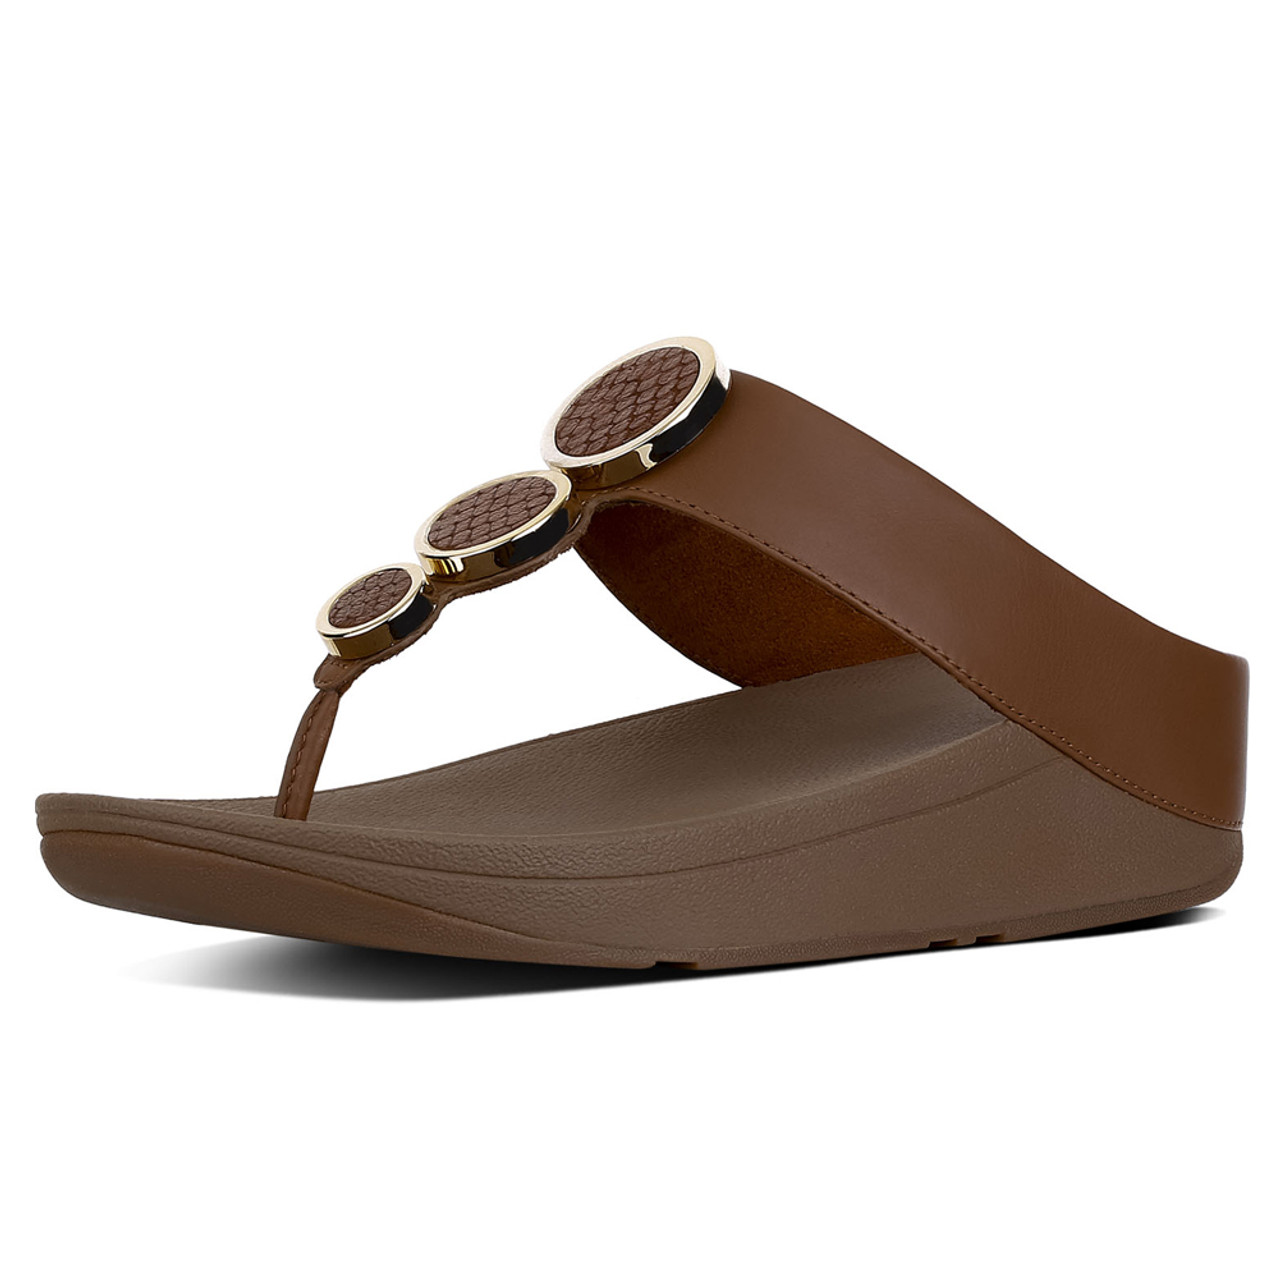 2f06413d7 Fitflop Women s Halo Toe Thong Dark Tan - Shop now   Shoolu.com